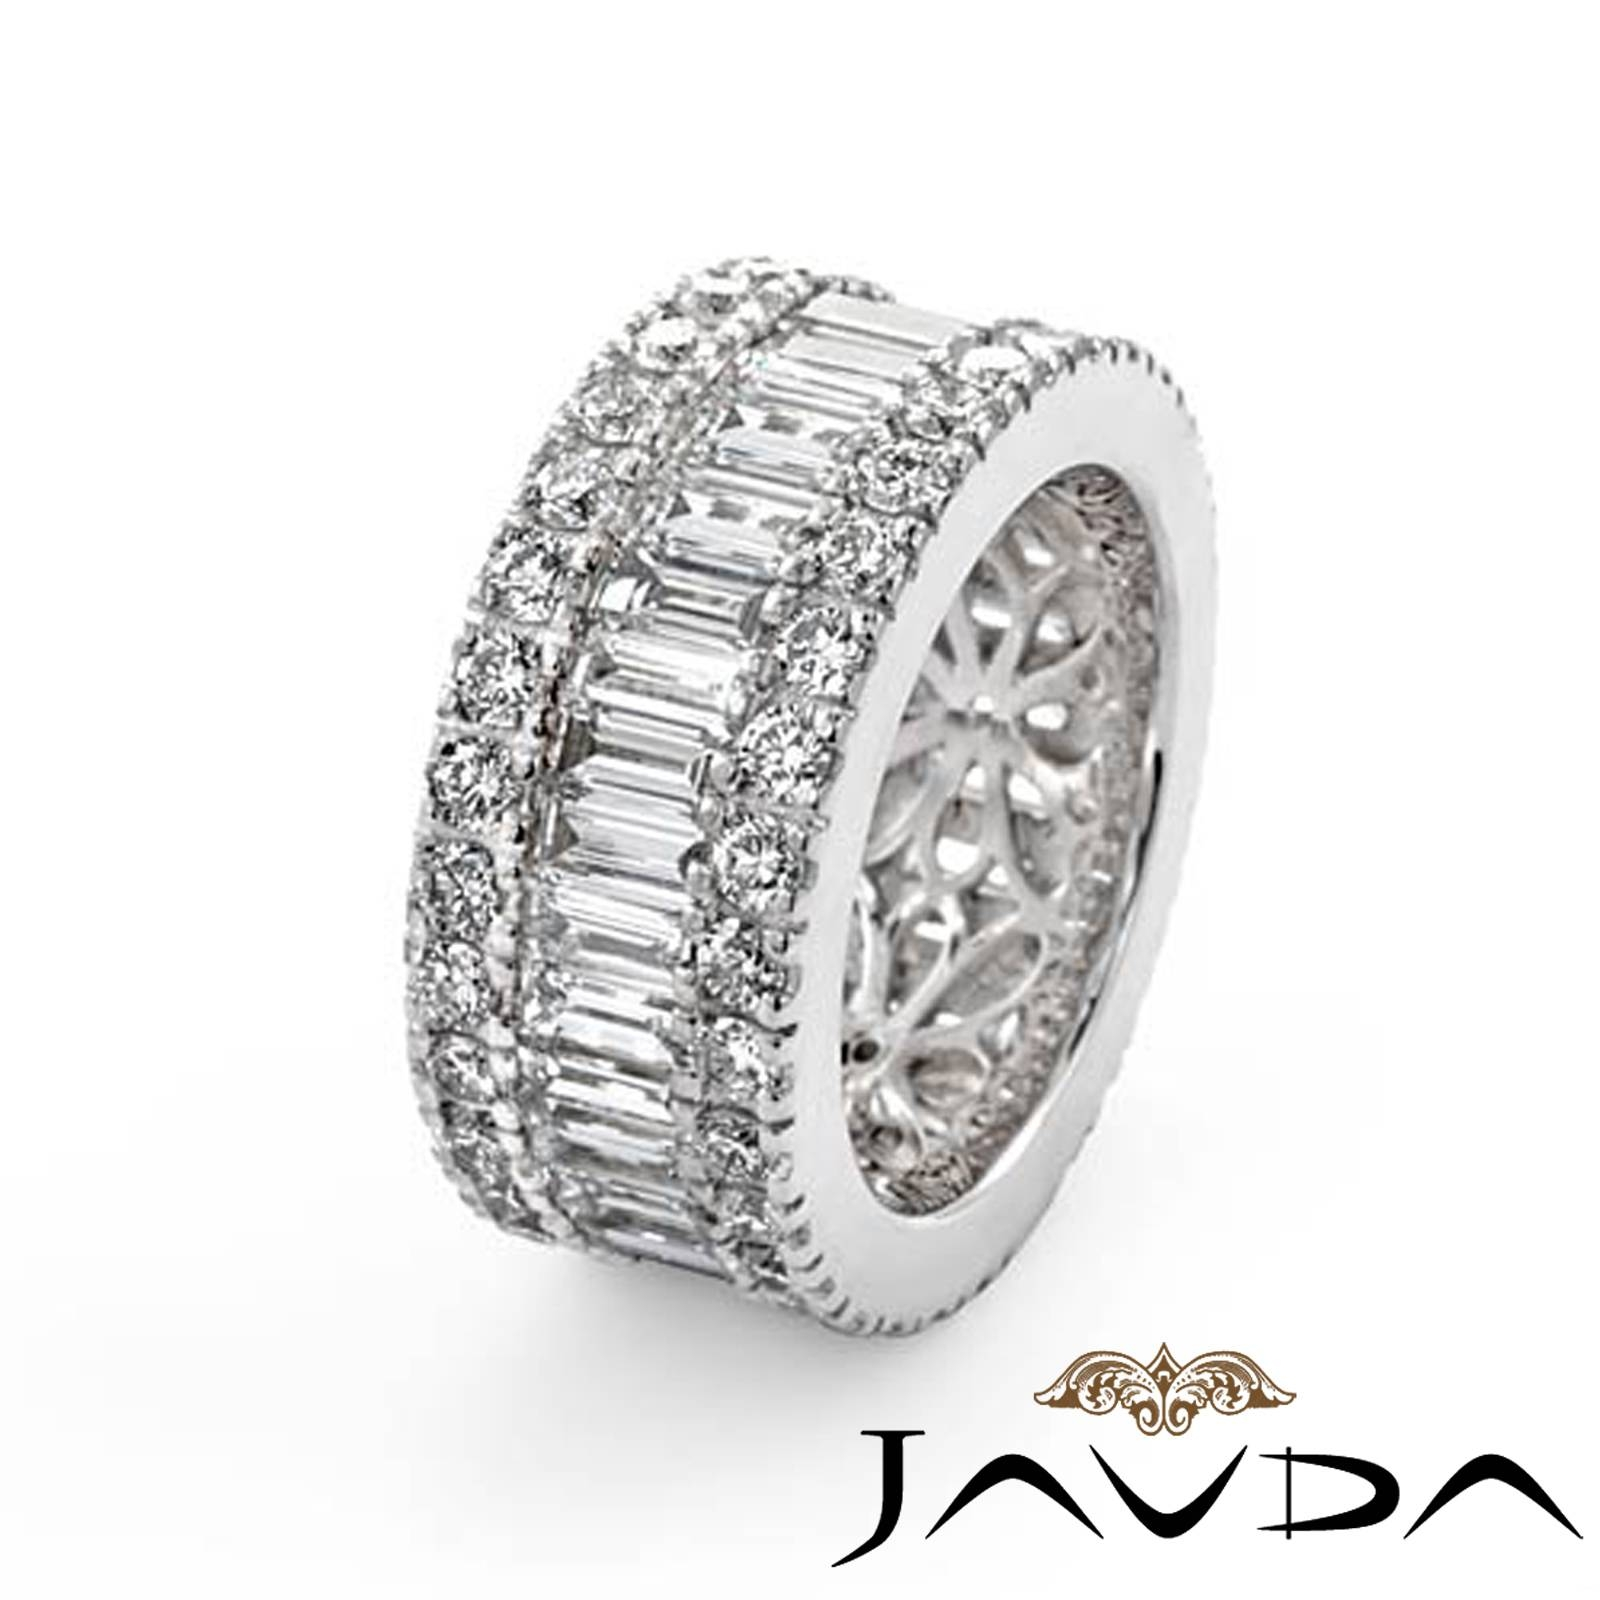 Women Wedding Band With Regard To Women Diamond Wedding Bands (View 13 of 15)